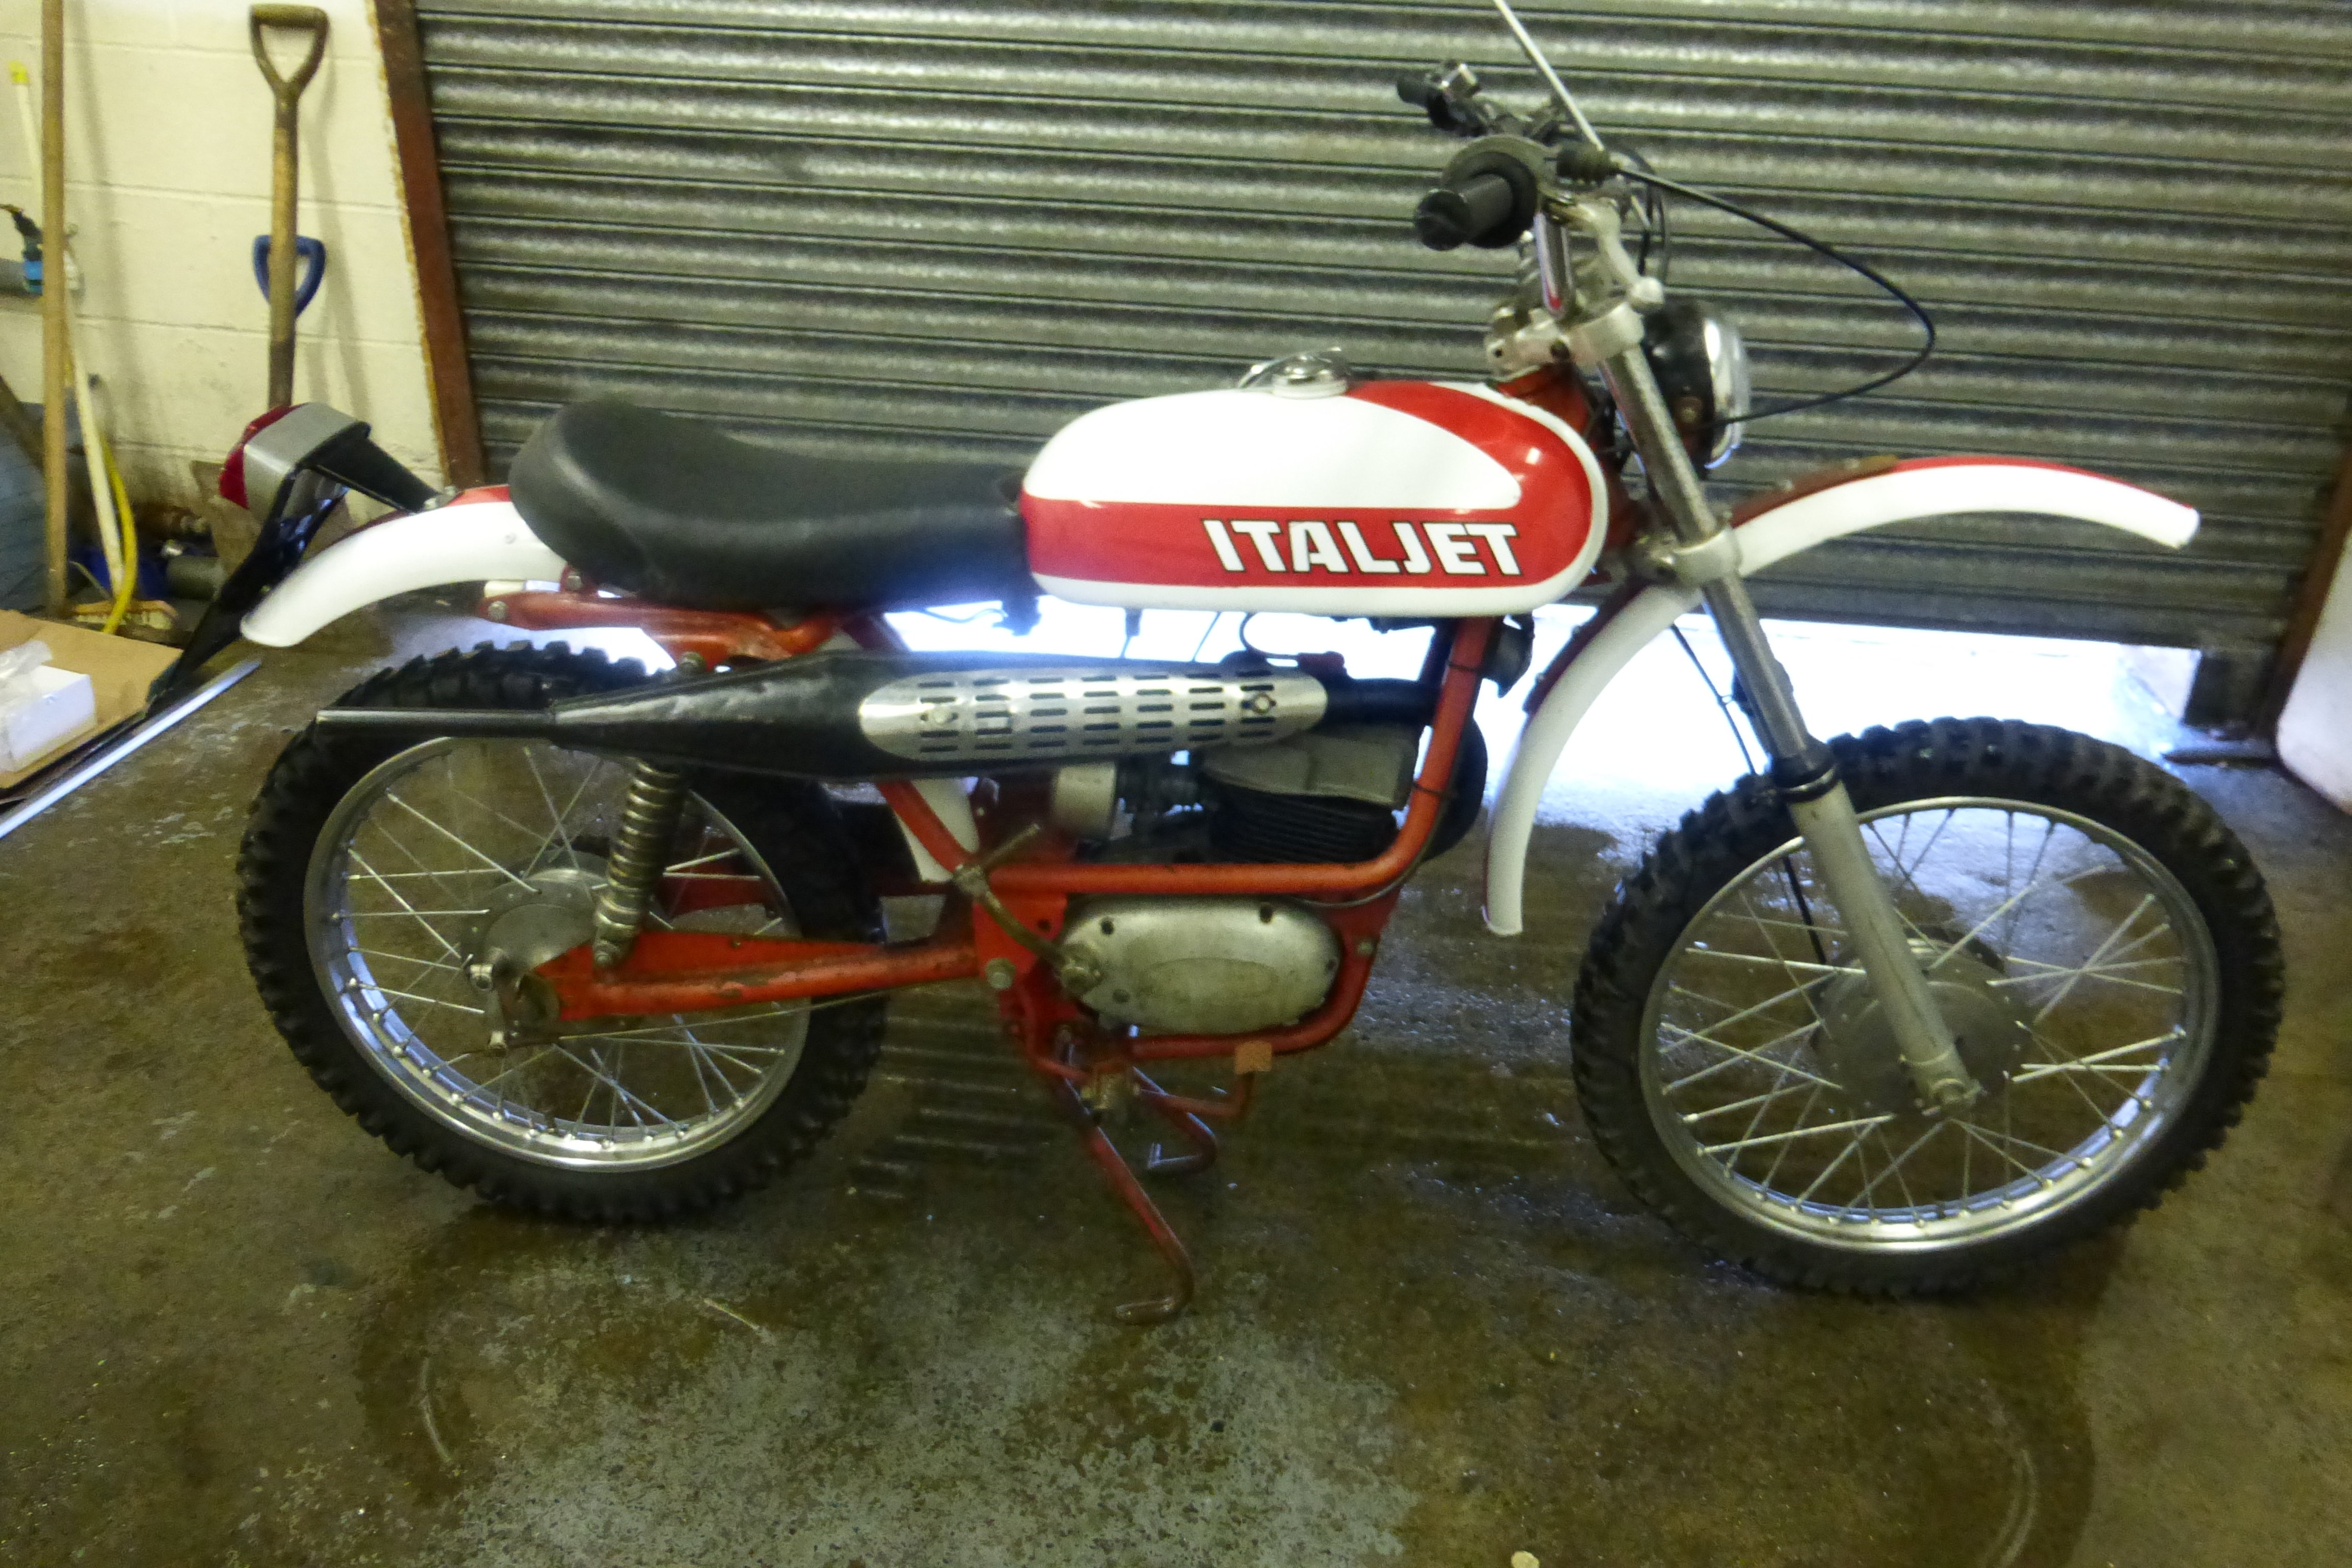 1900 Classic Italijet 100cc For Sale (picture 2 of 3)